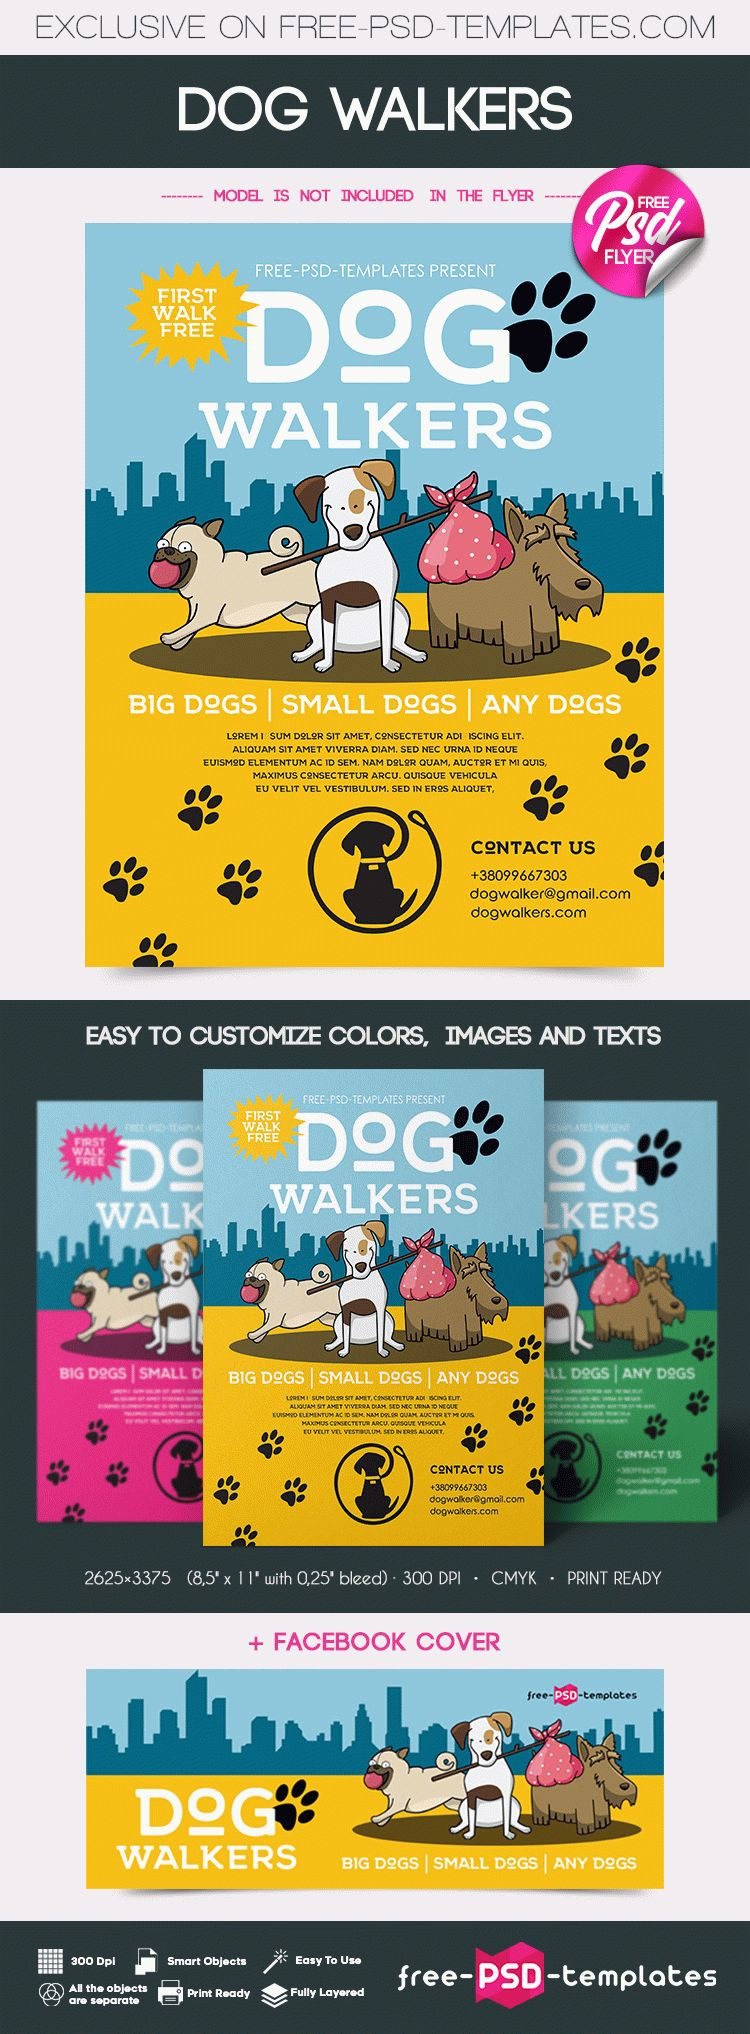 Free Dog Walkers Flyer In Psd Free Psd Templates